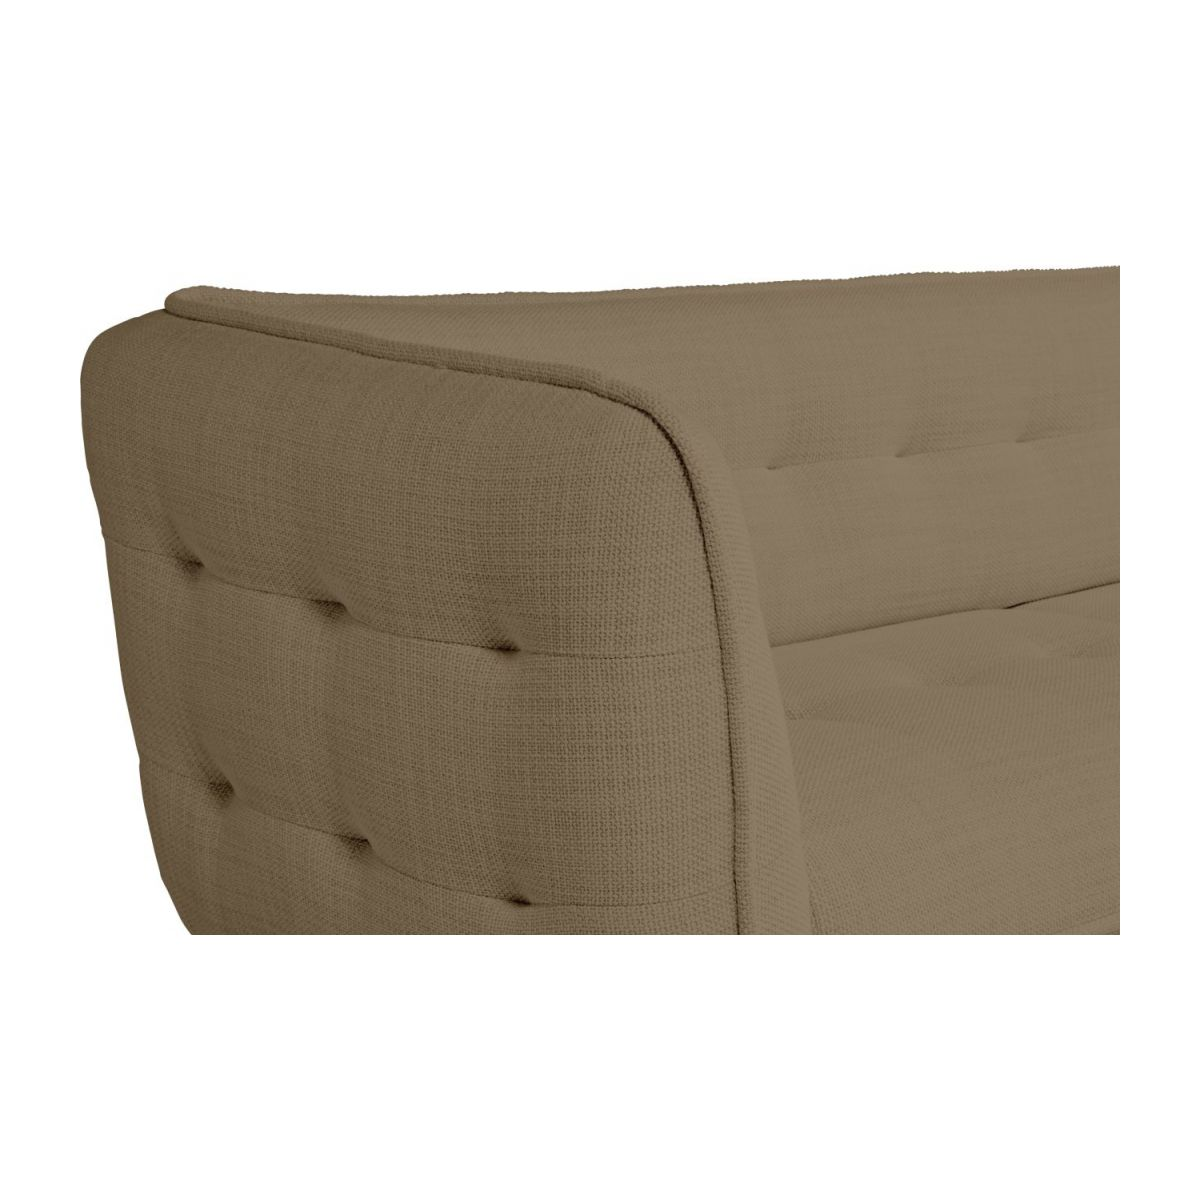 3 seater sofa in Fasoli fabric, jatoba brown and oak legs n°5